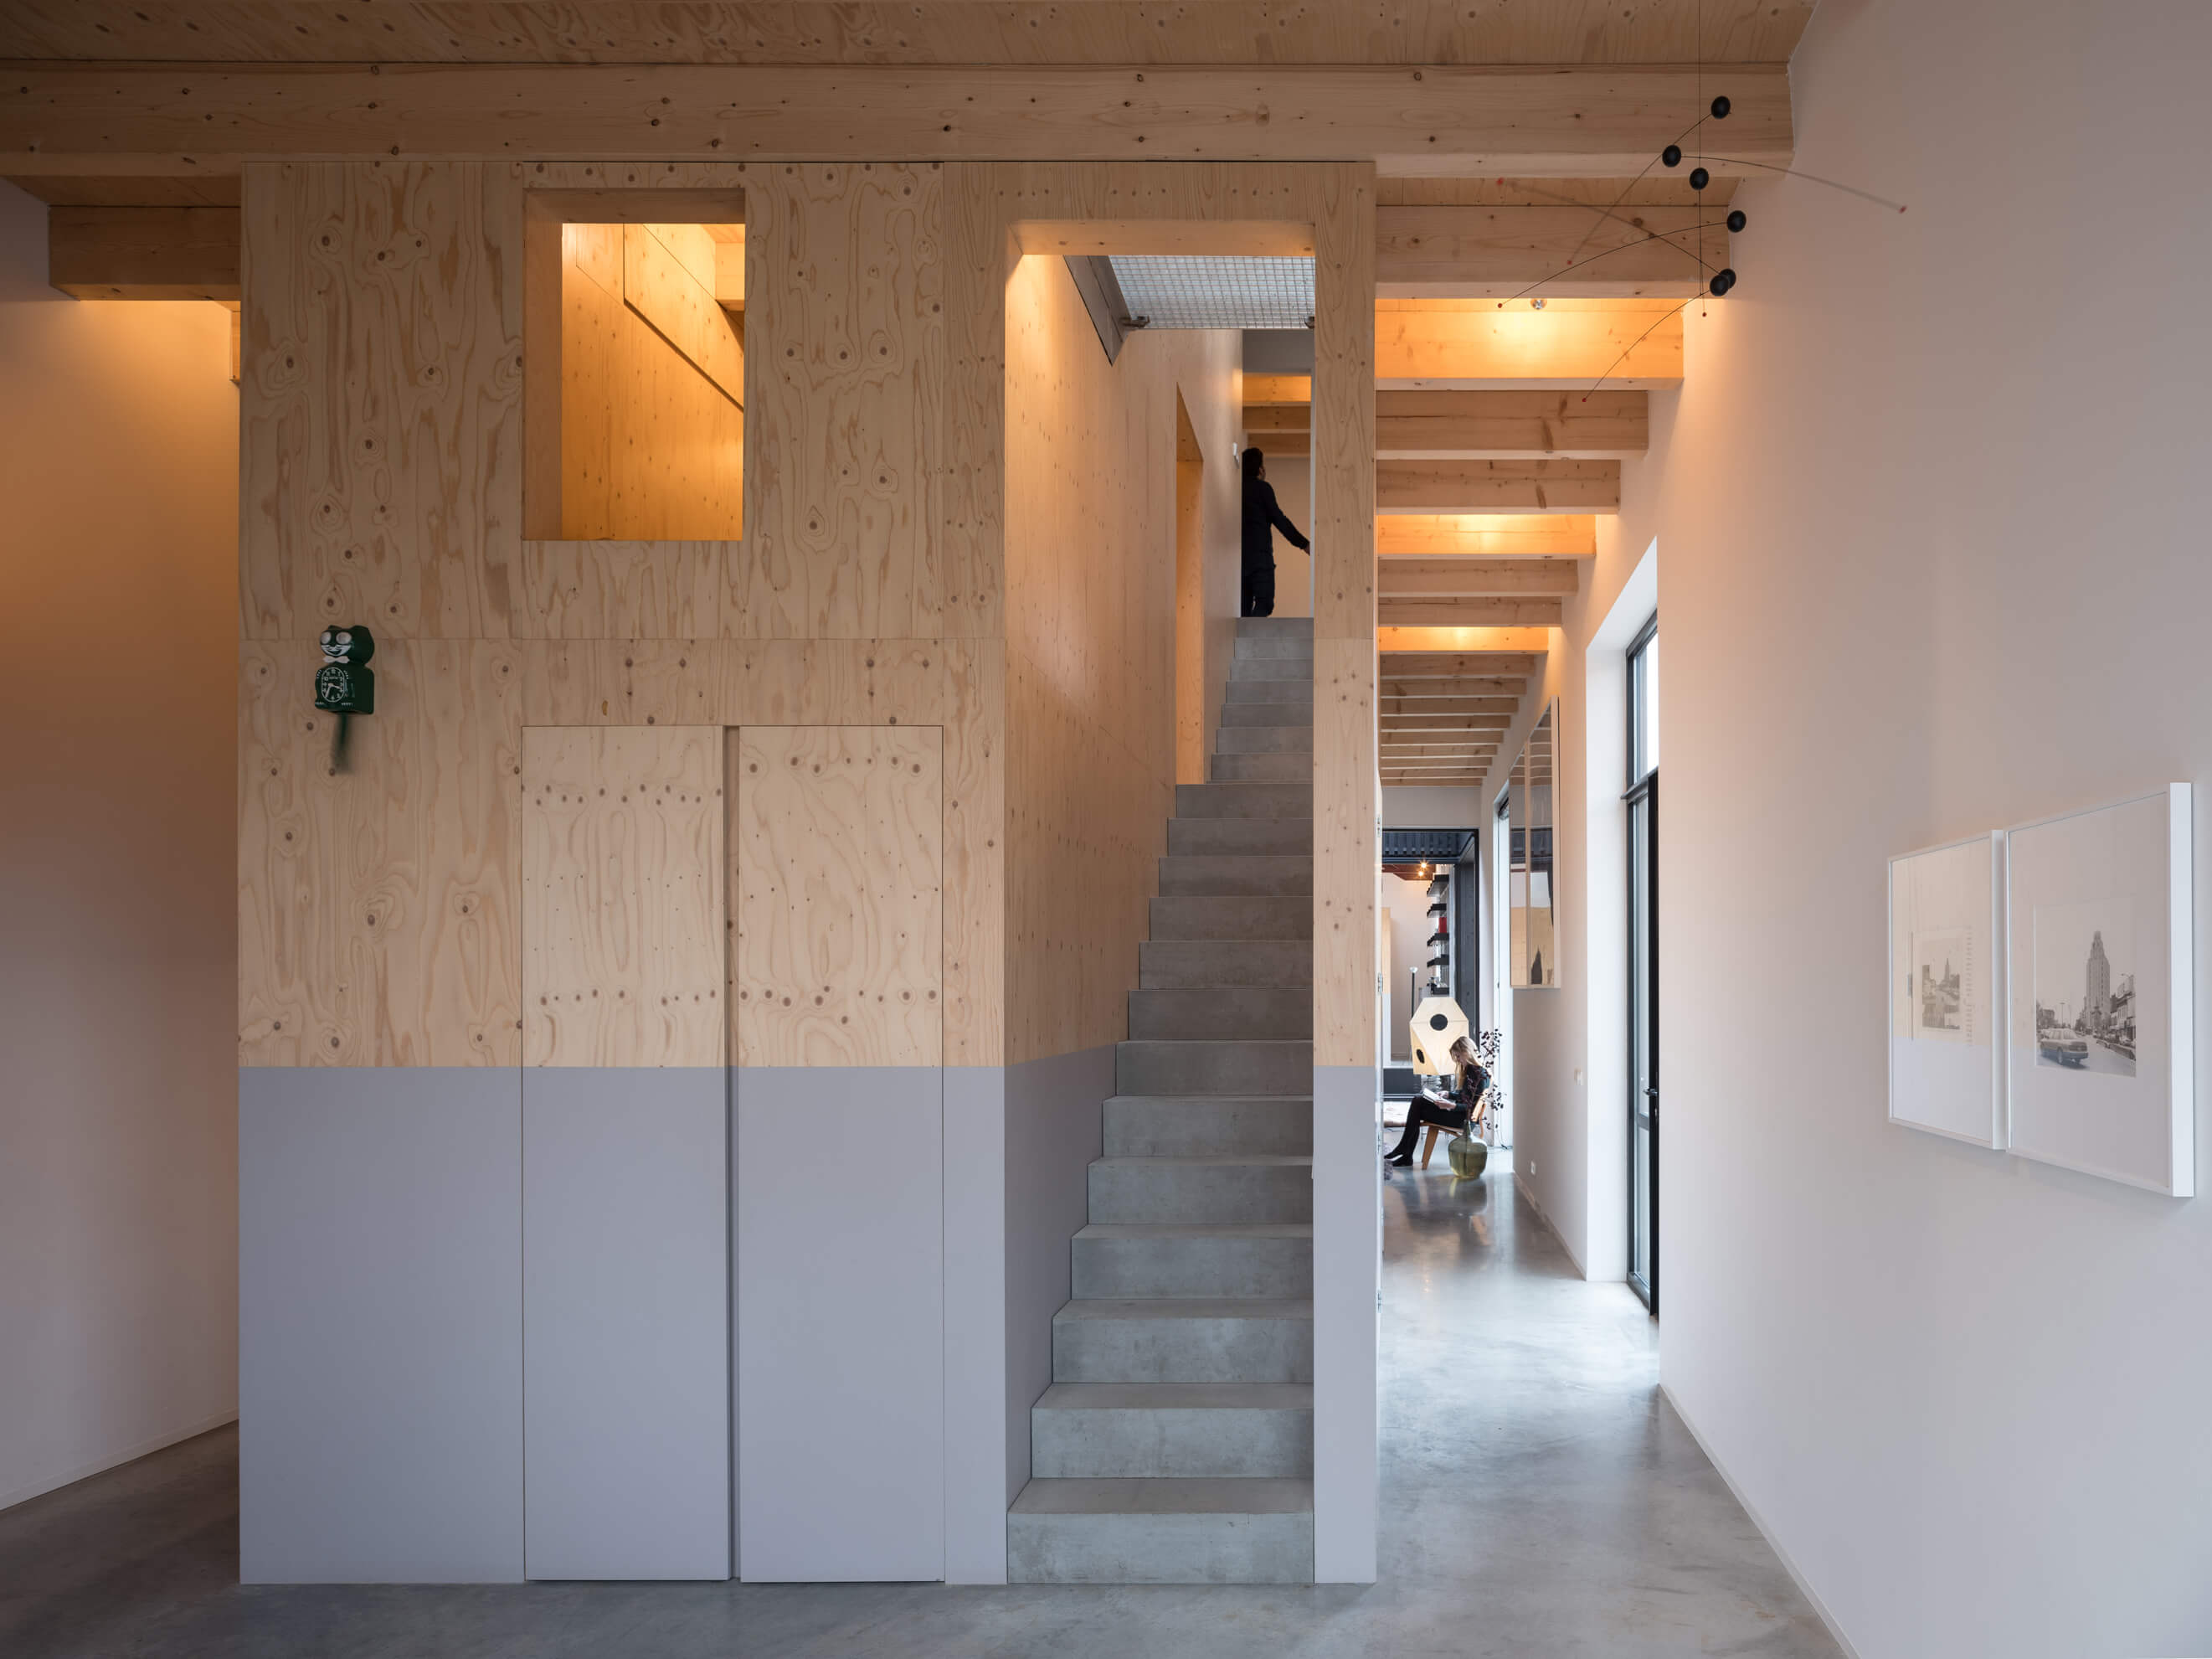 House M&M by NEXT architects